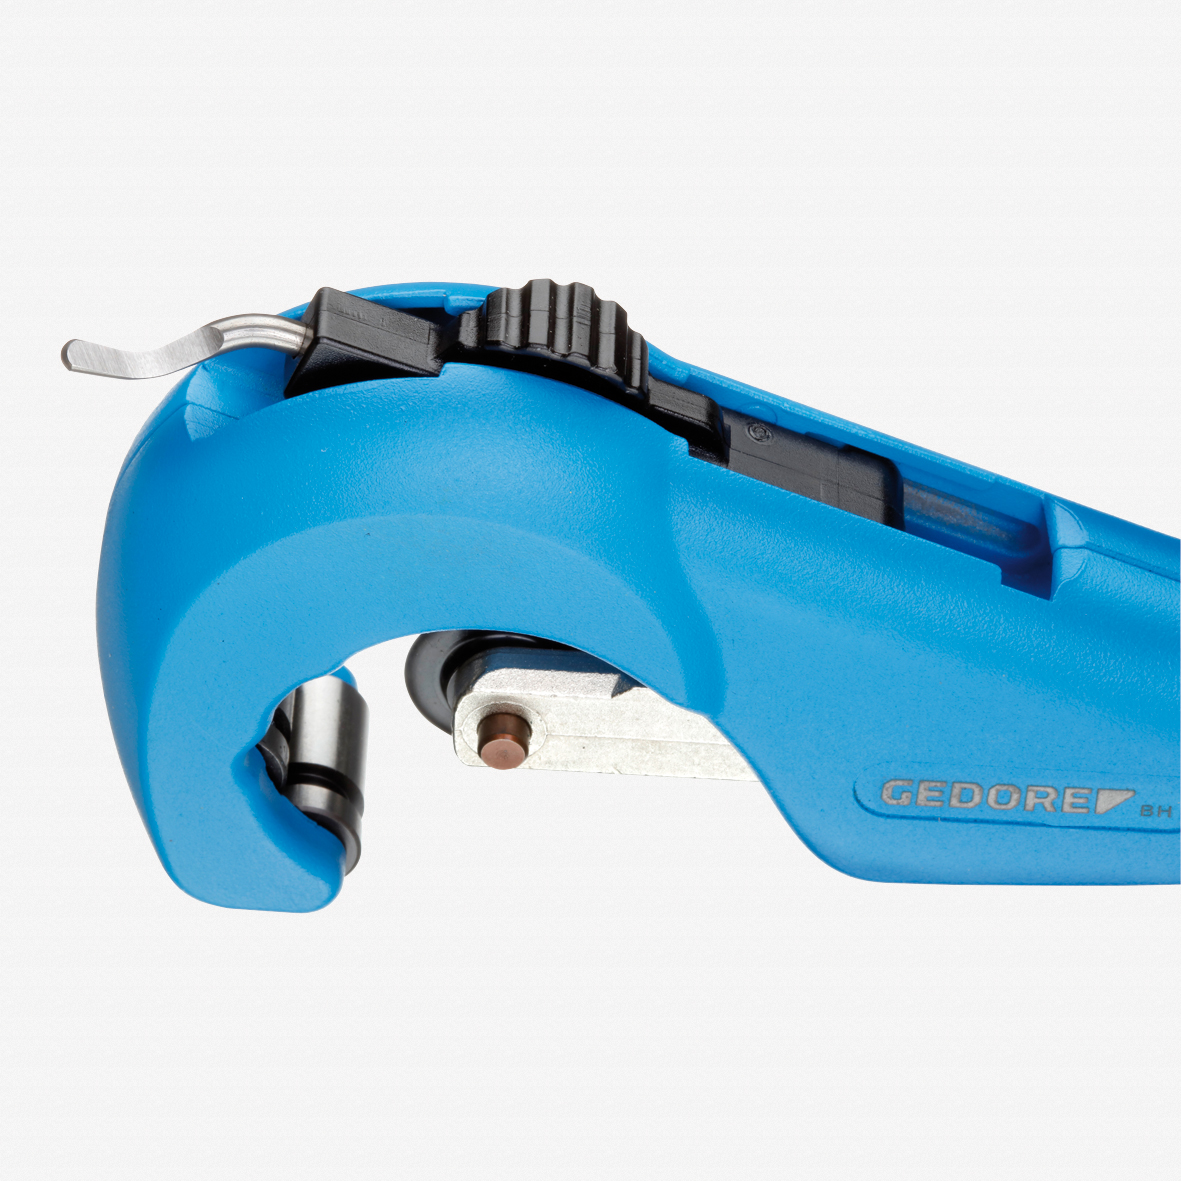 Gedore 2250 3 Pipe cutter for copper pipes 3-35mm  - KC Tool